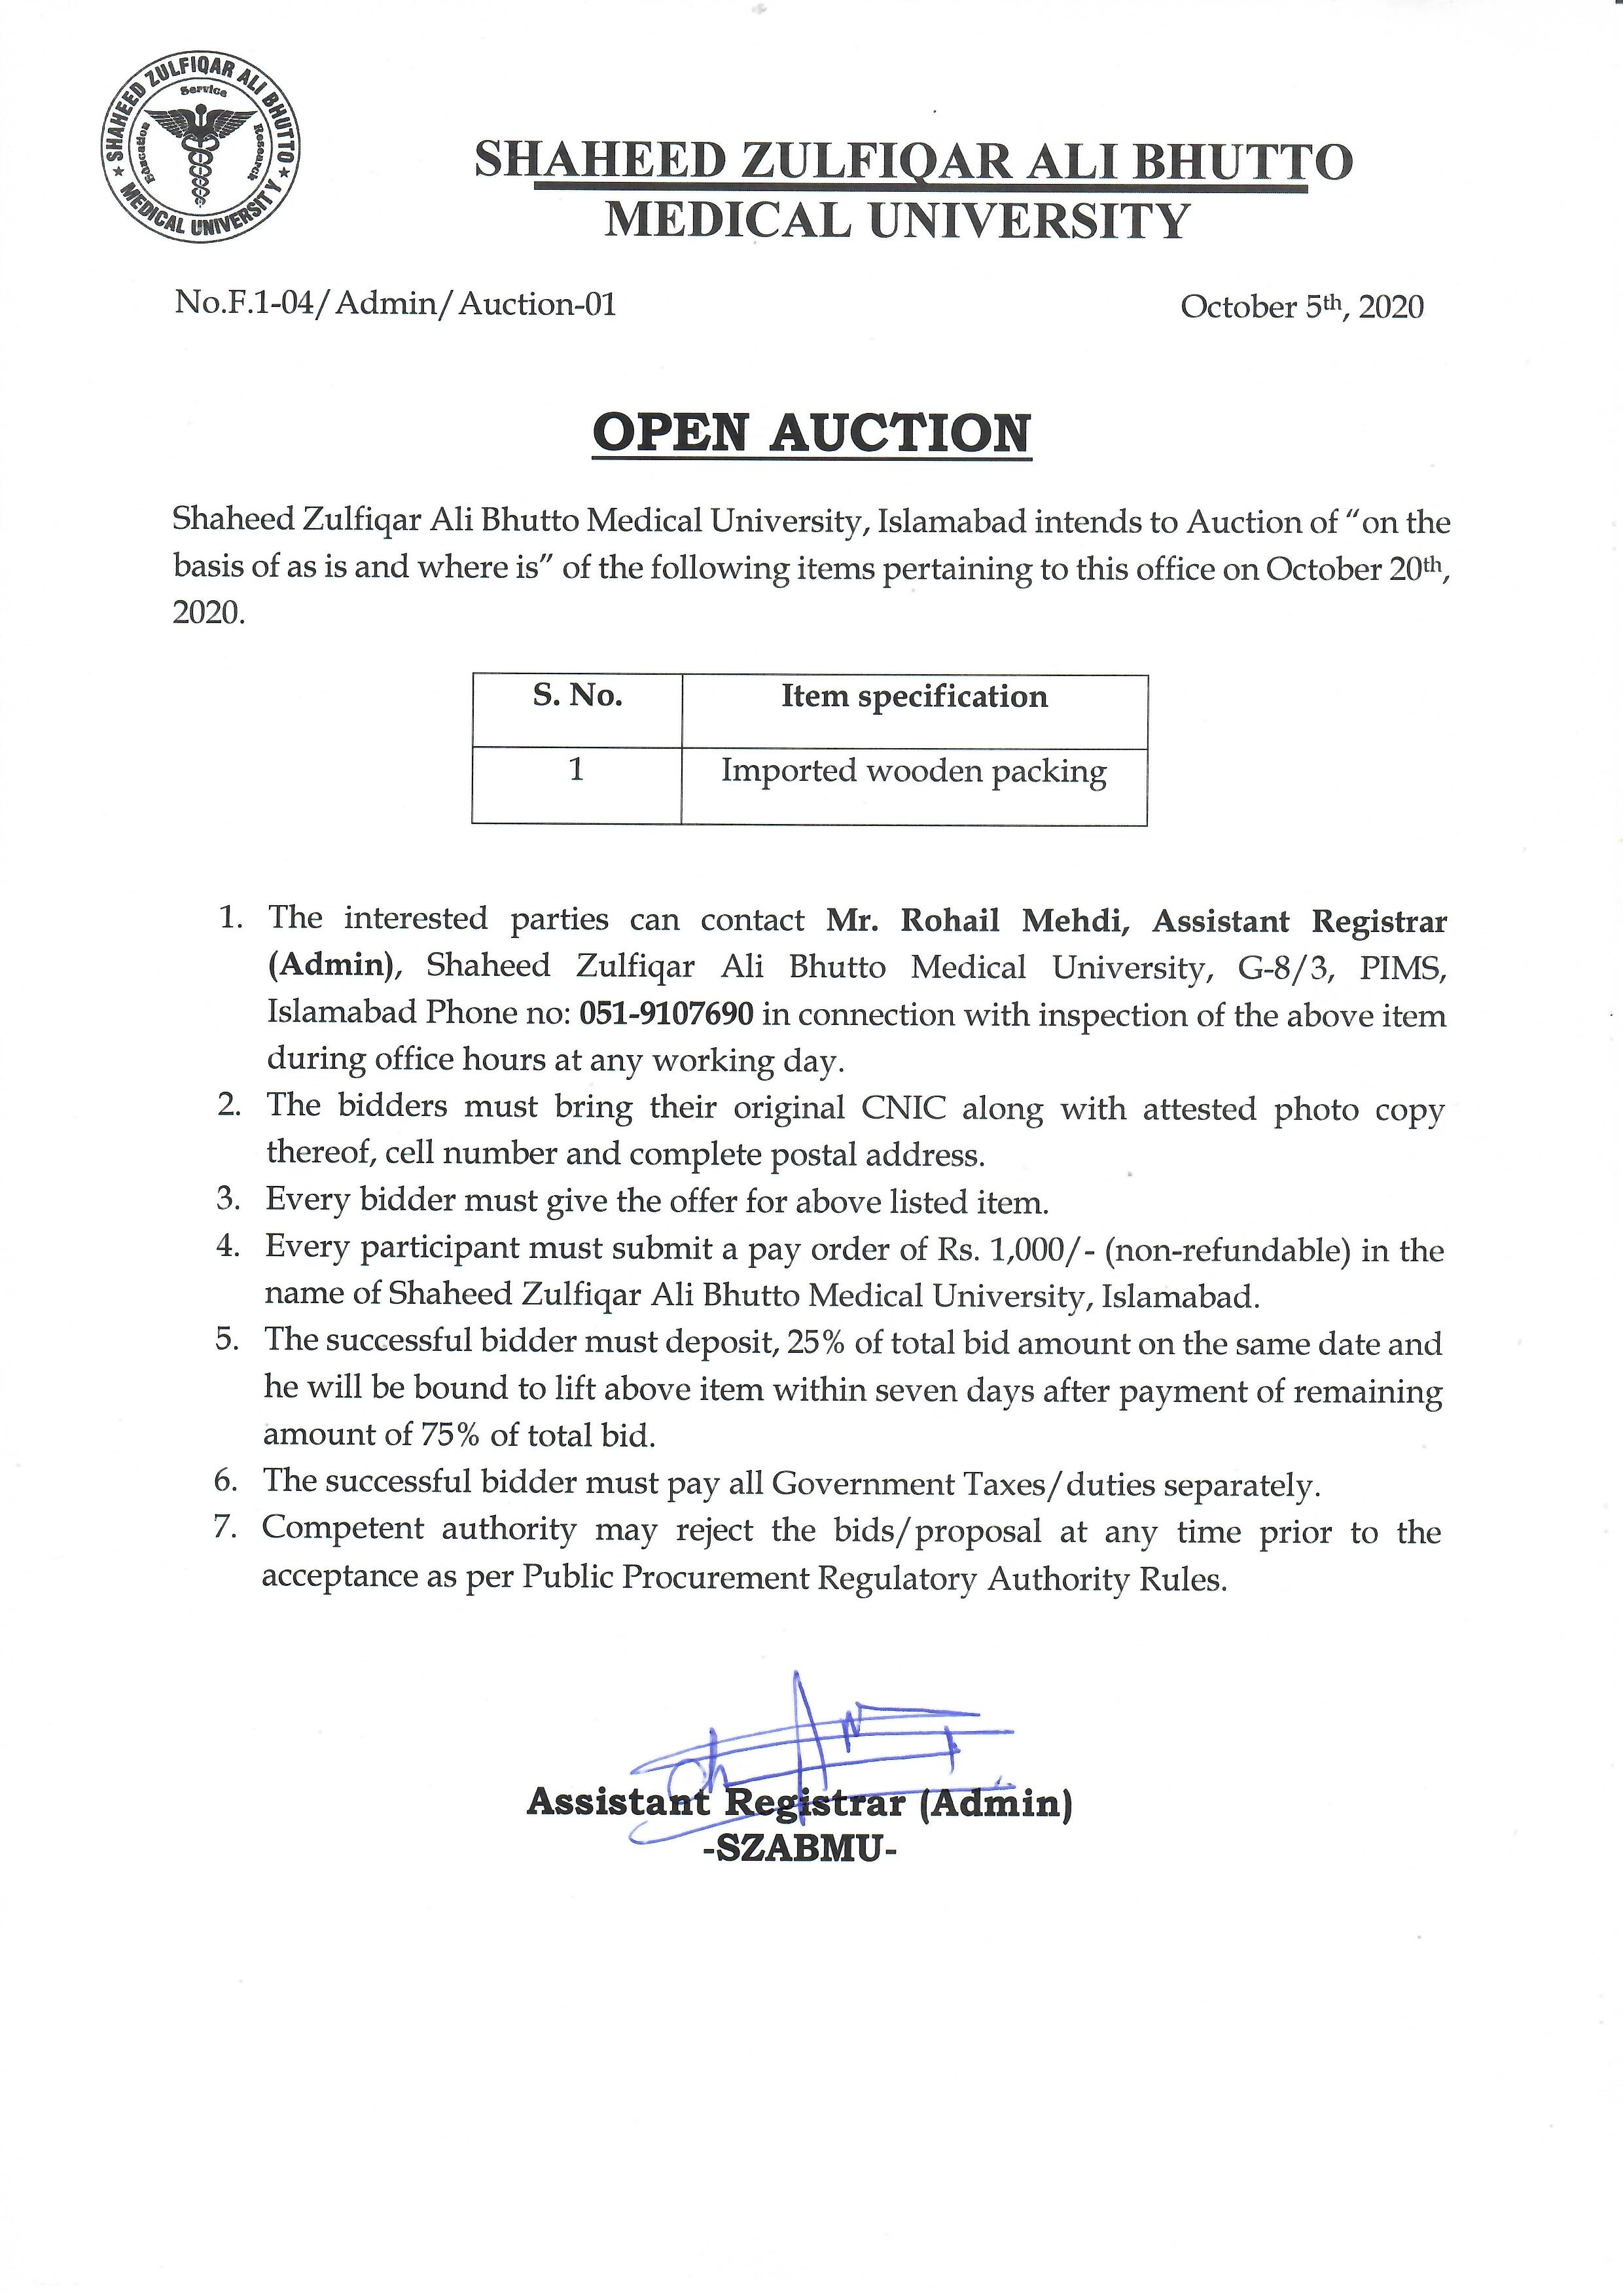 Auction Notice for Imported Wooden Packing